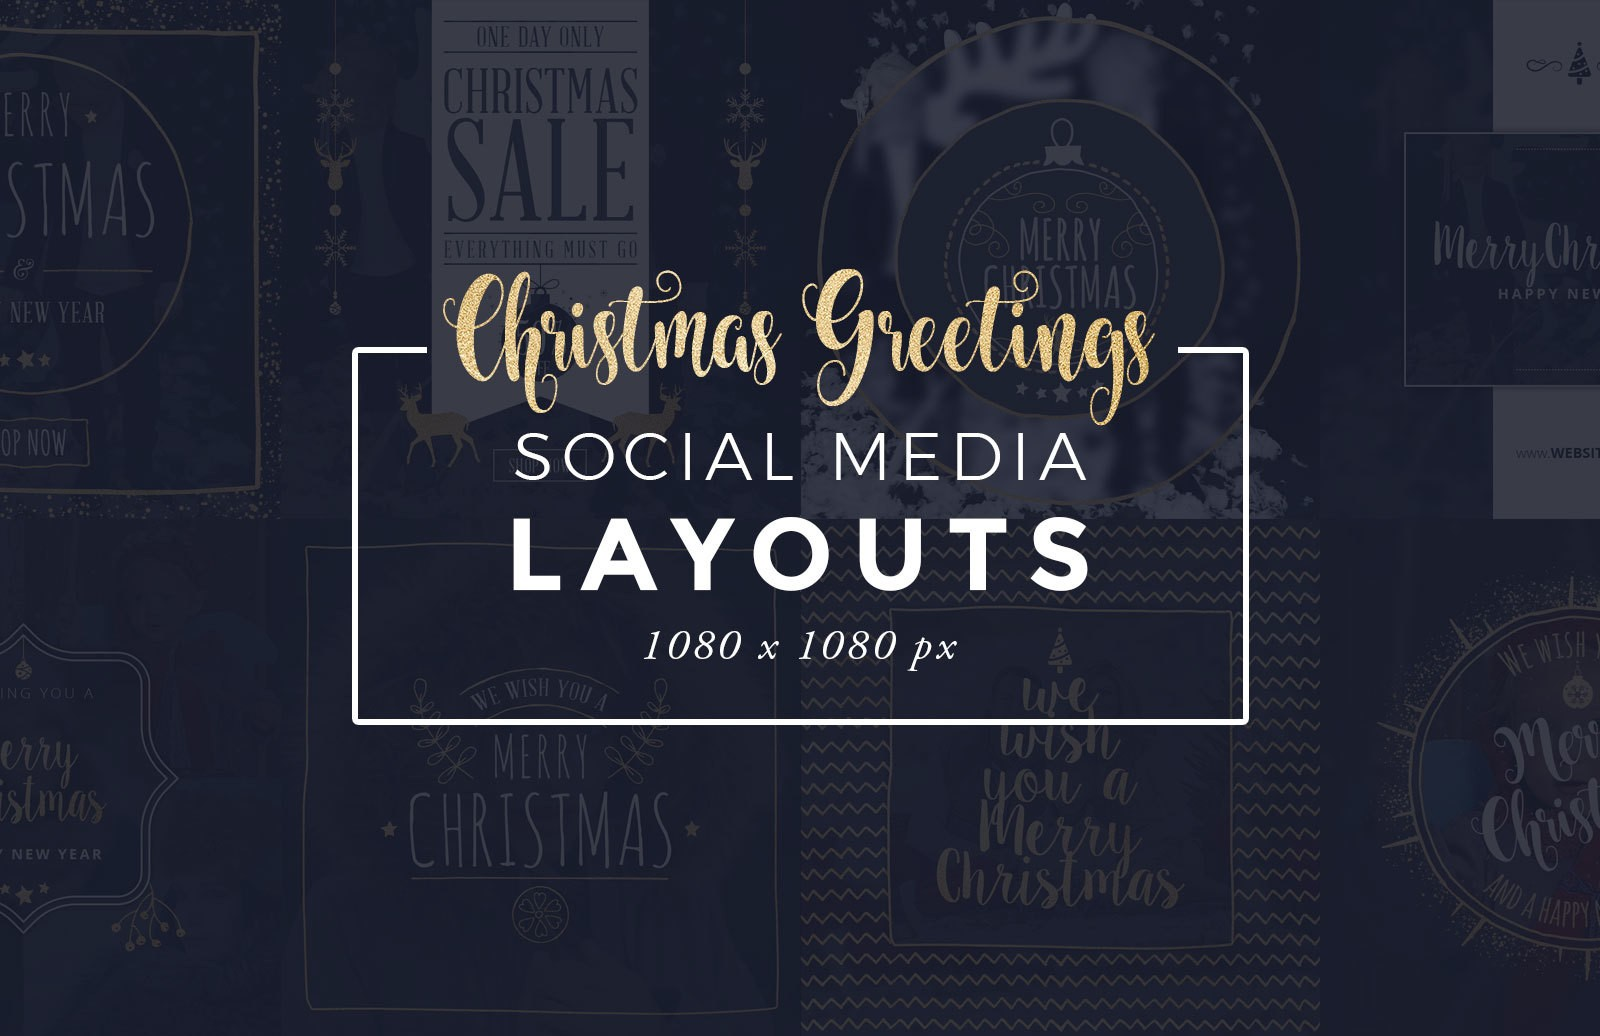 Christmas Greetings Social Media Templates Preview 1D